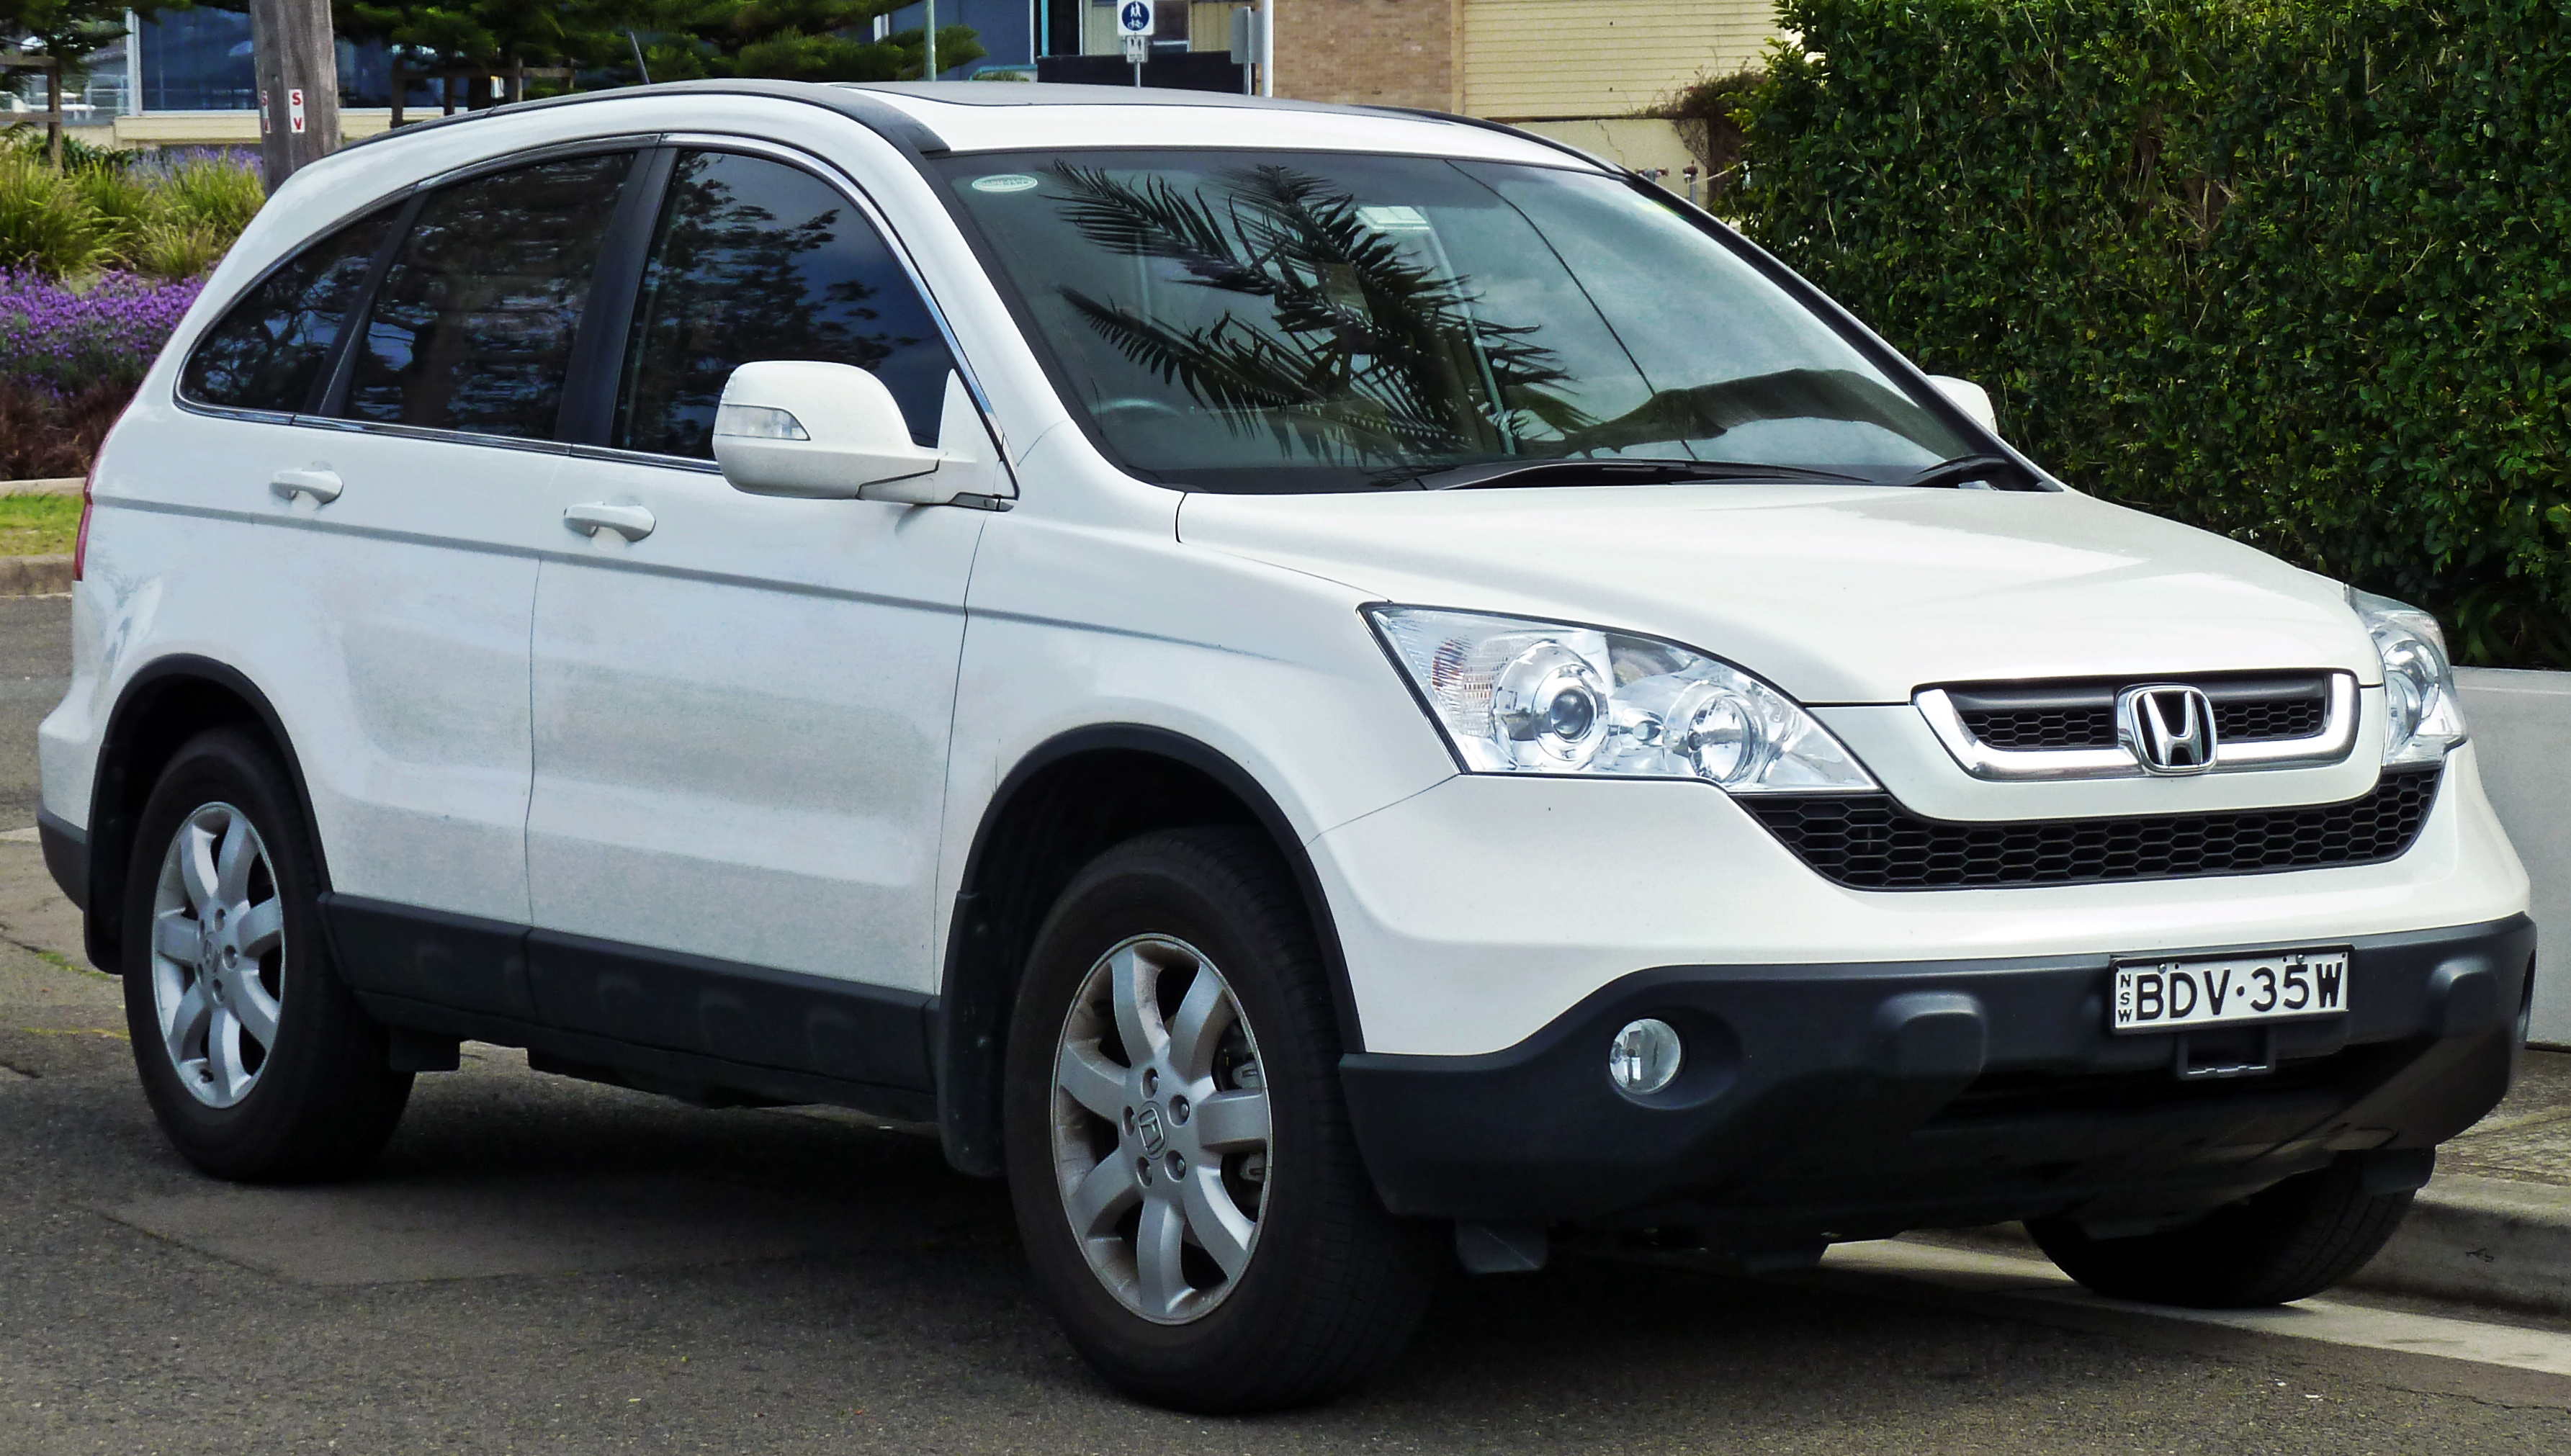 file 2007 2009 honda cr v re my2007 luxury wagon wikimedia commons. Black Bedroom Furniture Sets. Home Design Ideas